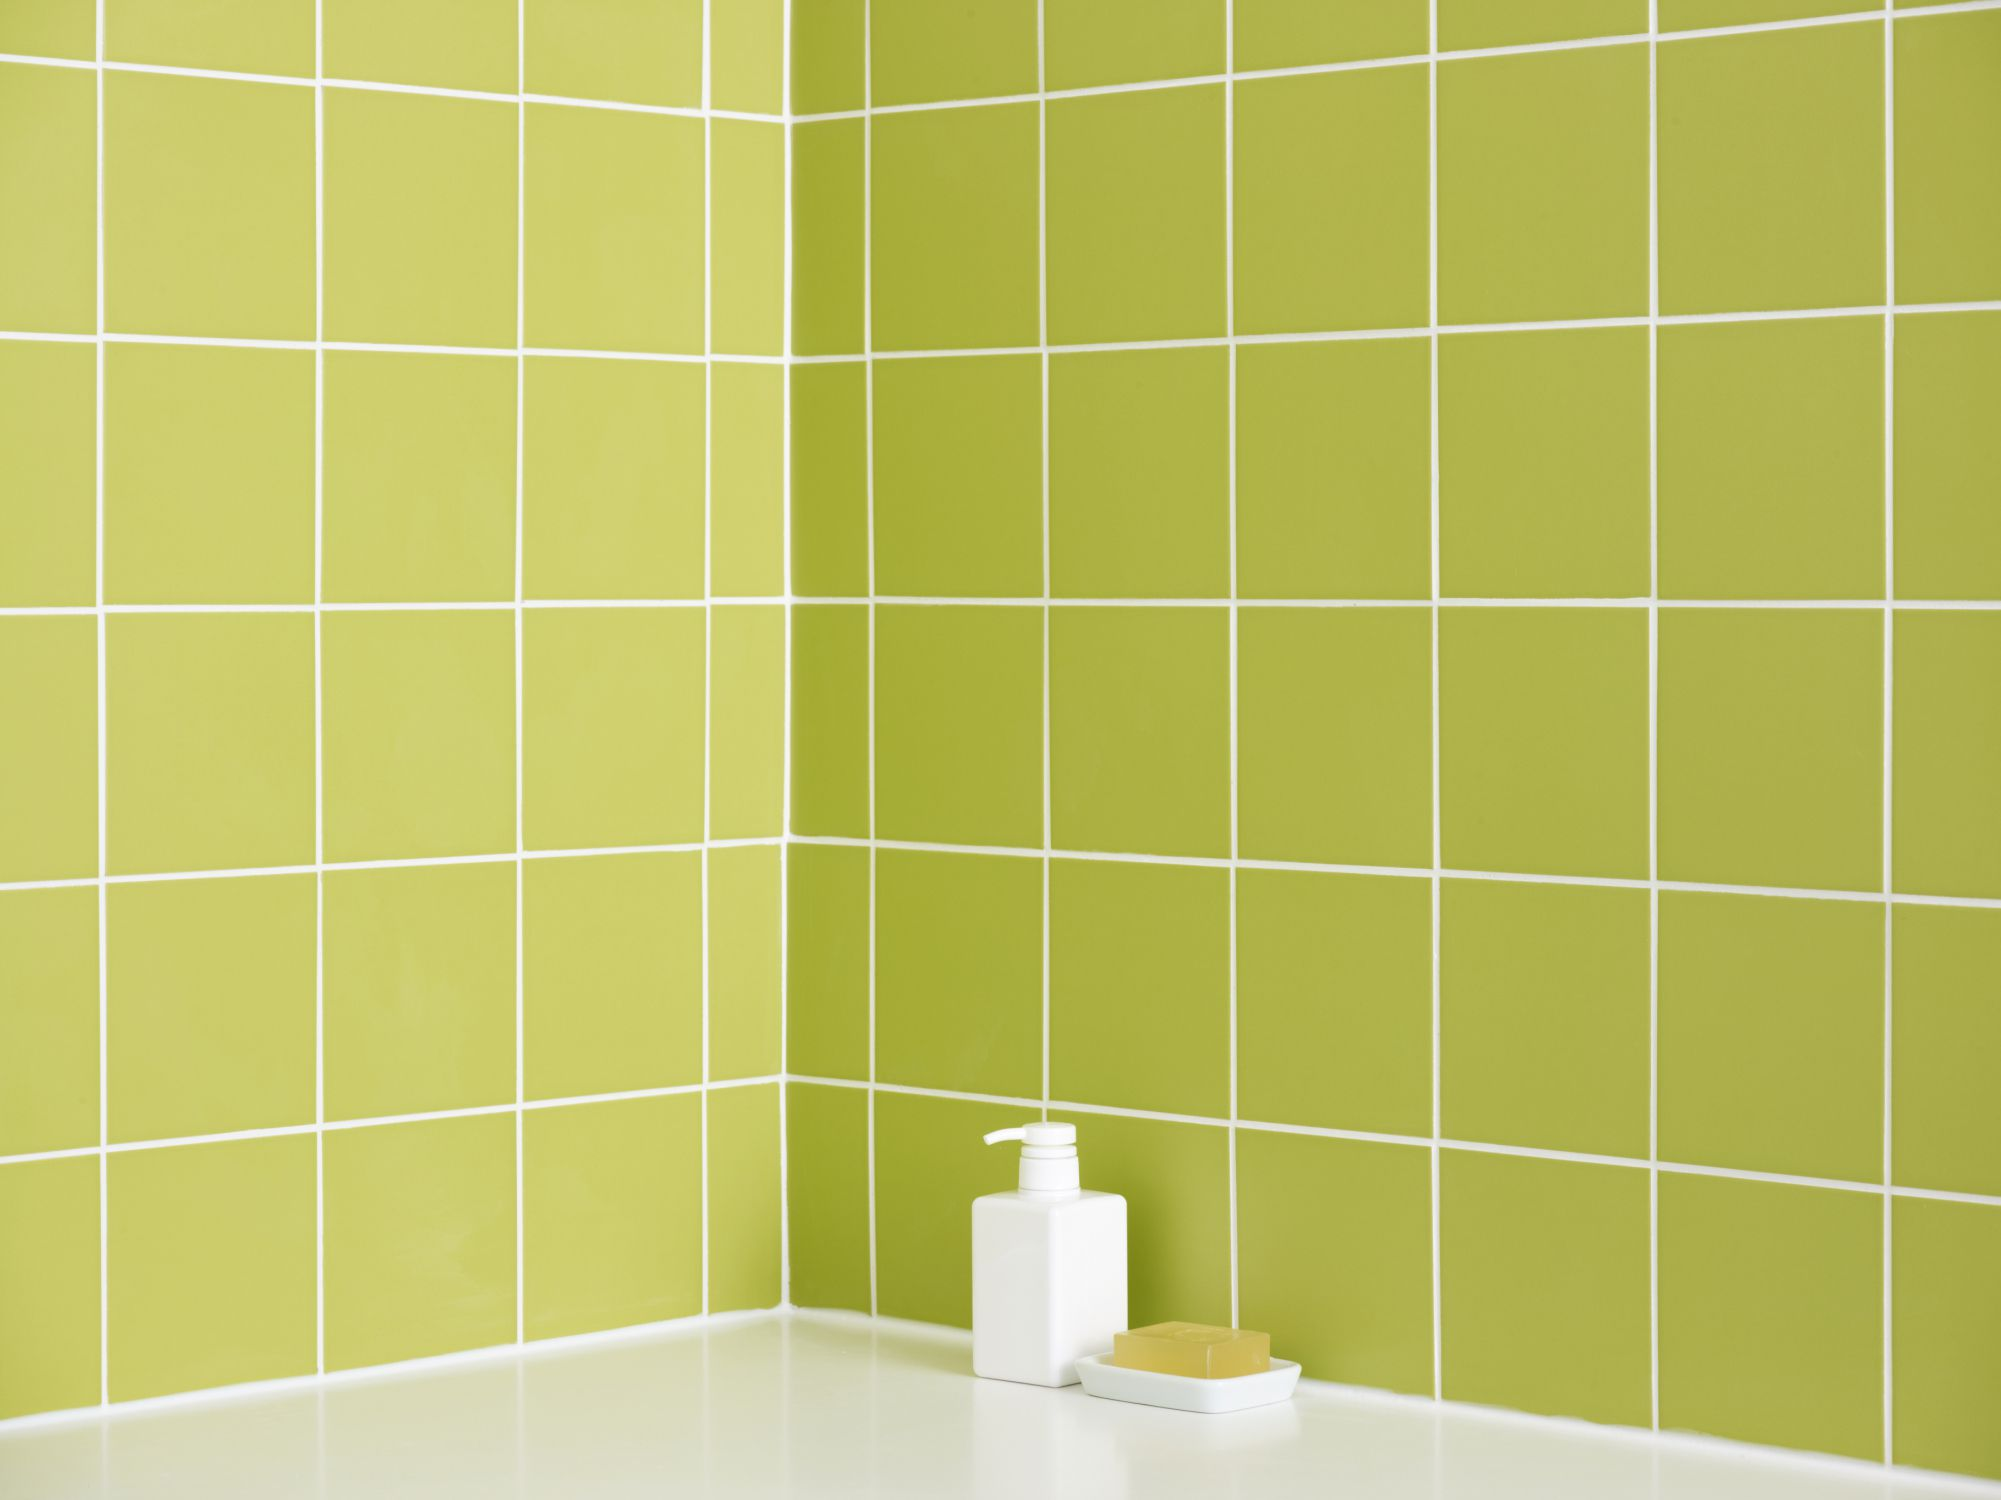 Green 4 by 4 Ceramic Tiles Near Bathtub